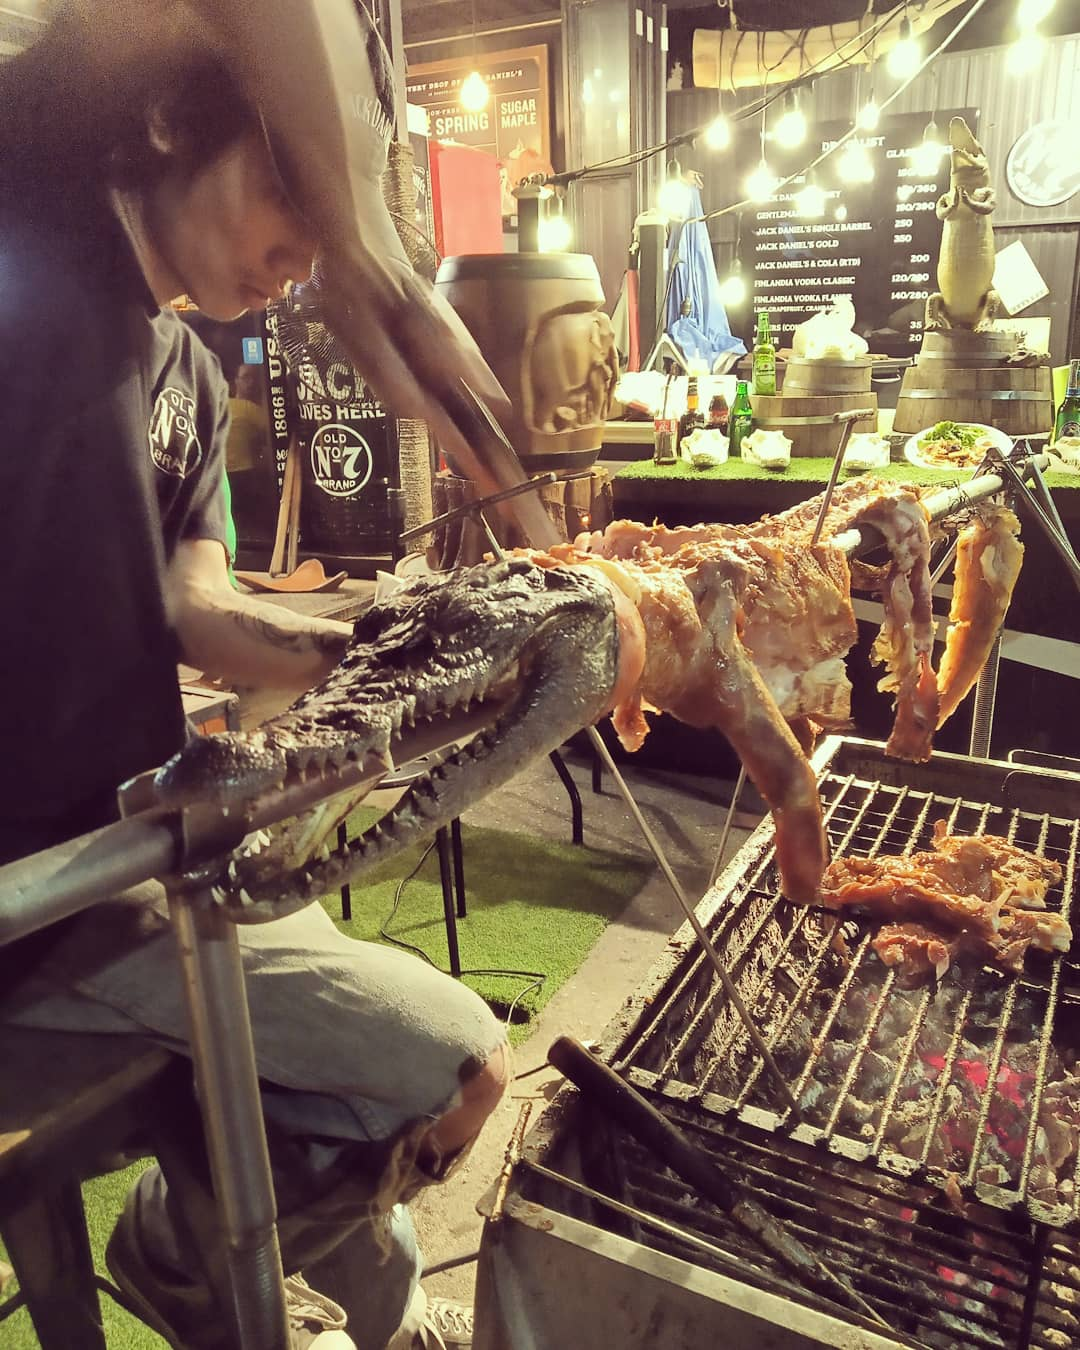 Guy carving crocodile meat on the spit